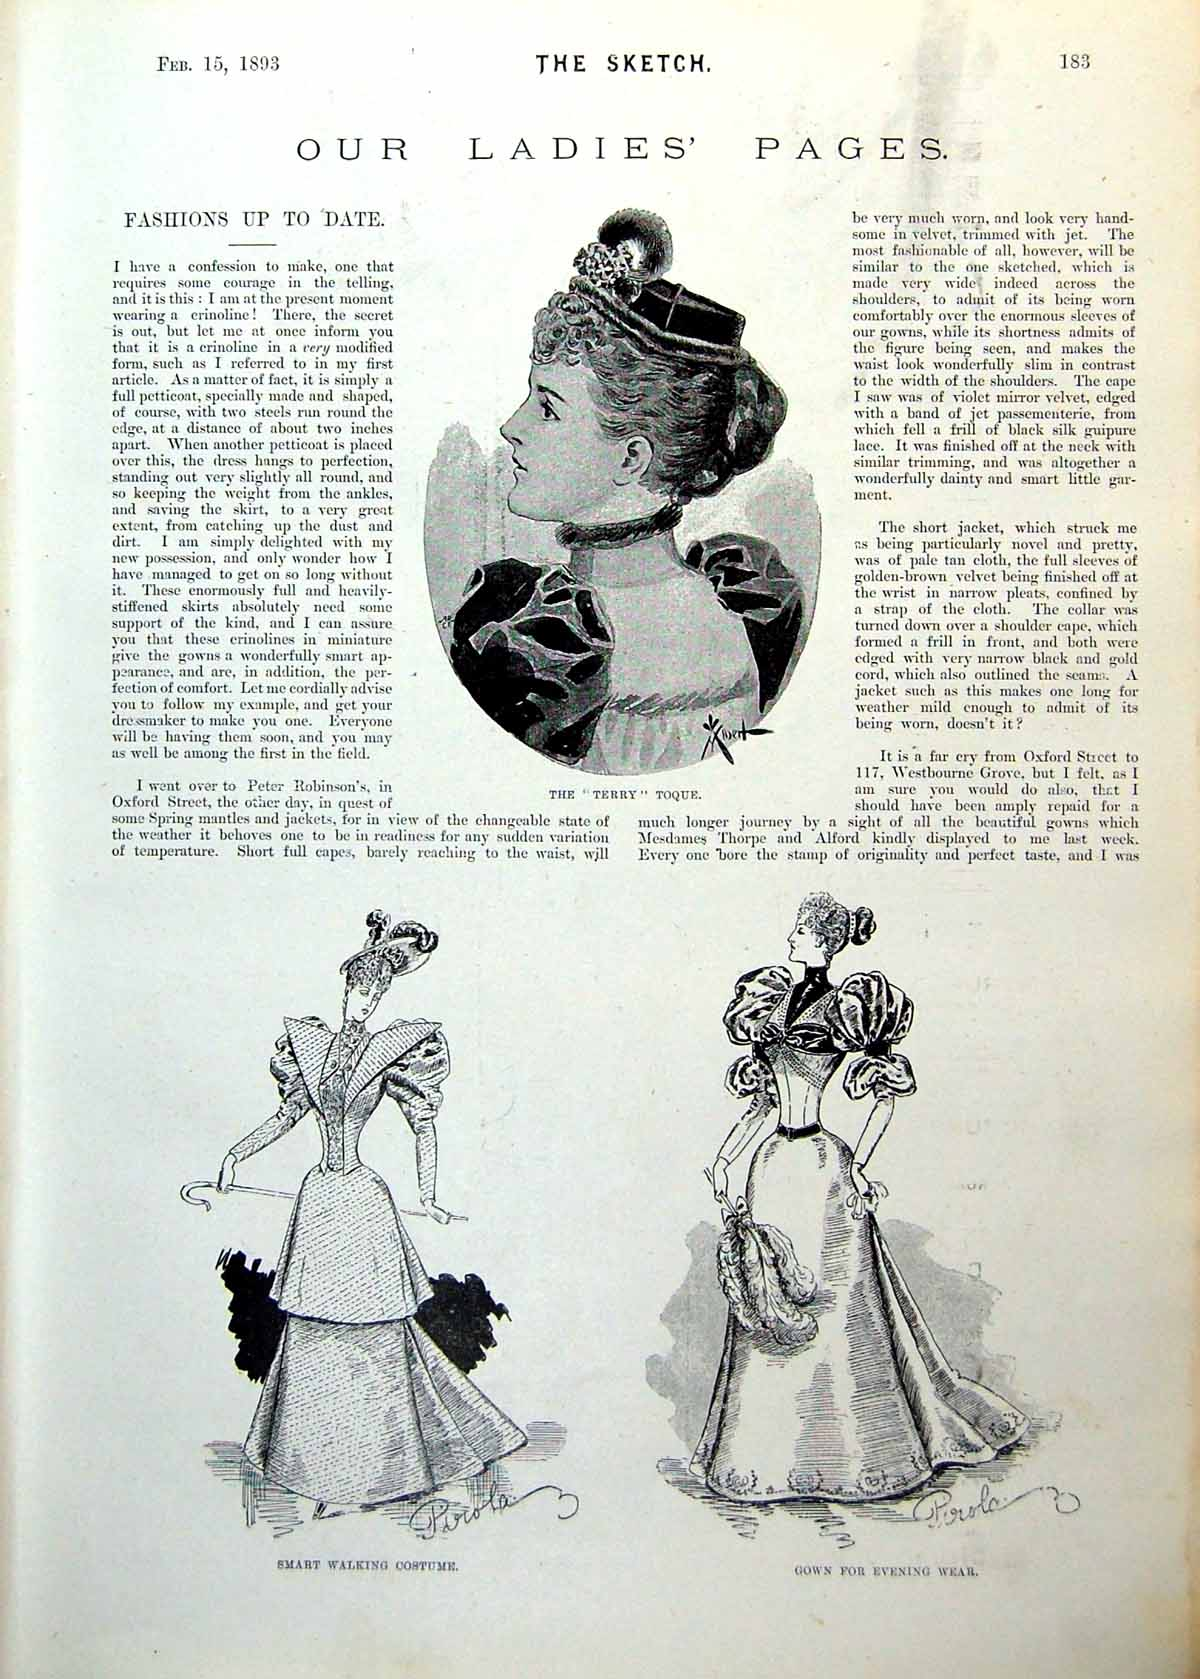 Old-Antique-Print-Ladies-Page-Terry-Toque-Walking-Costume-Hats-Cape-1893-19th